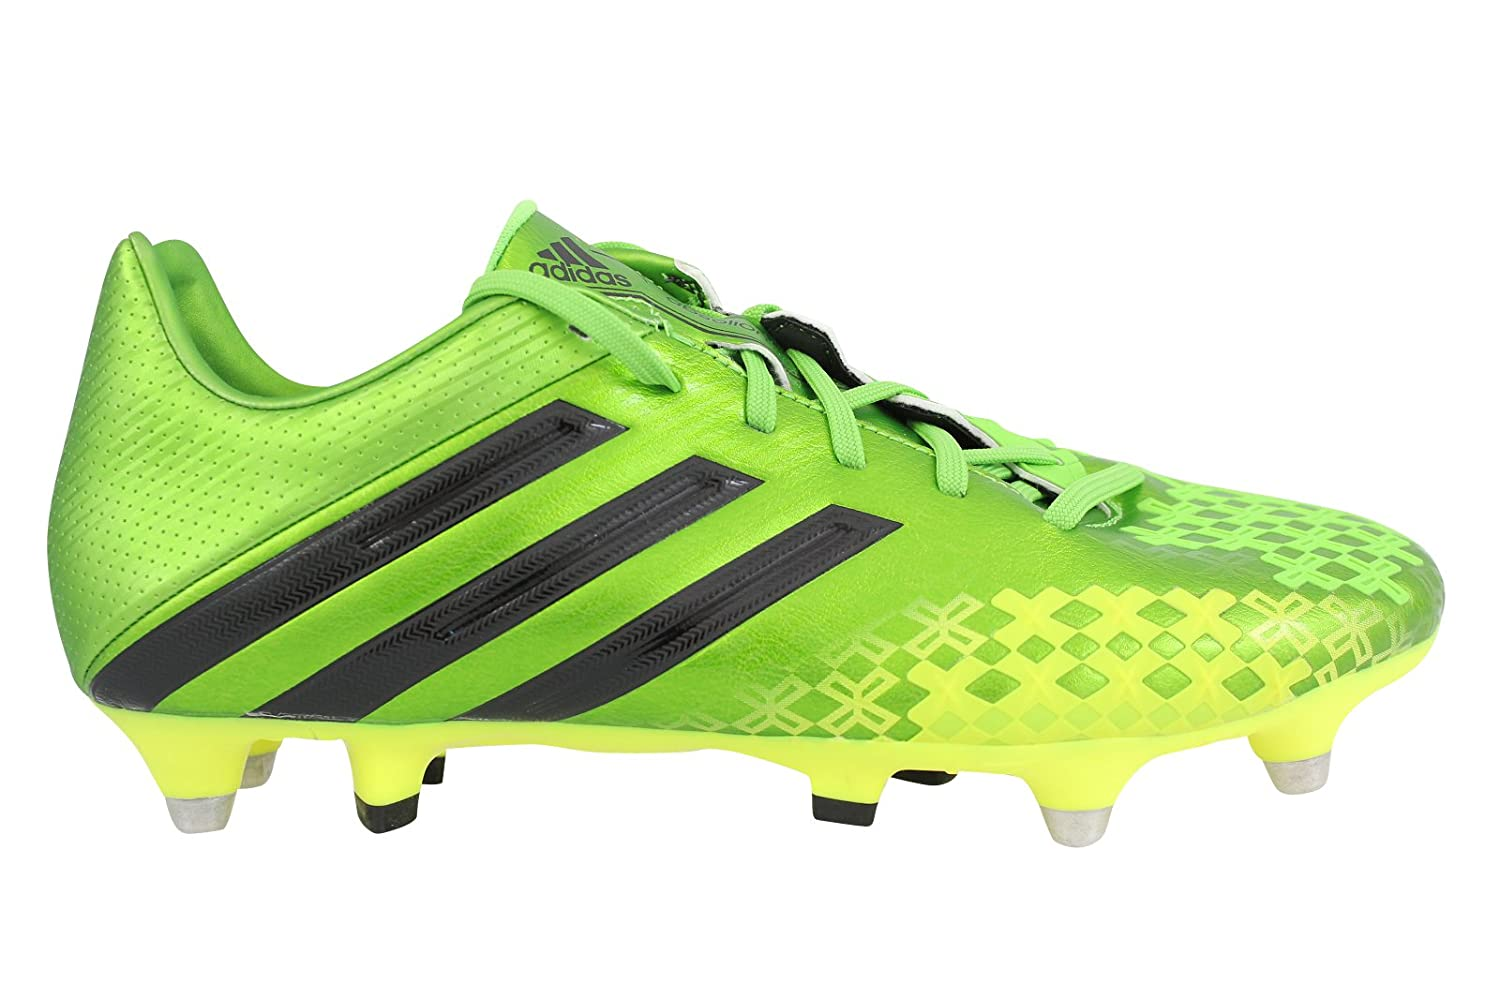 8701e1929dc8 adidas predator absolion LZ TRX SG mens football boots Q21720 soccer cleats  soft ground: Amazon.co.uk: Shoes & Bags